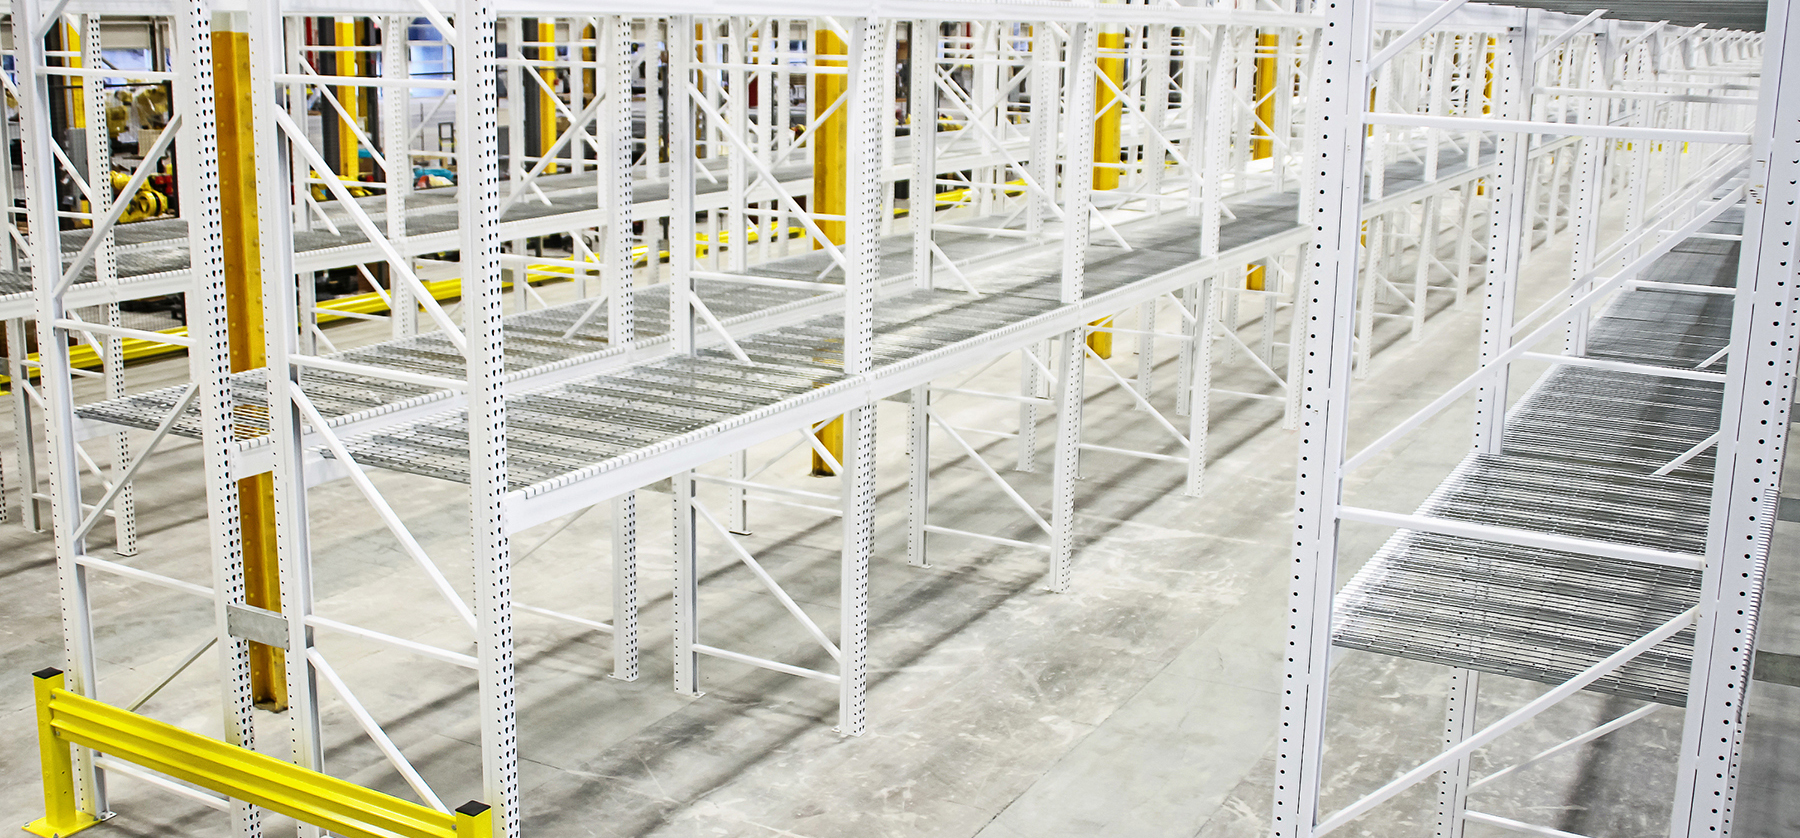 Galvanized pallet rack with custom colors and warehouse safety equipment